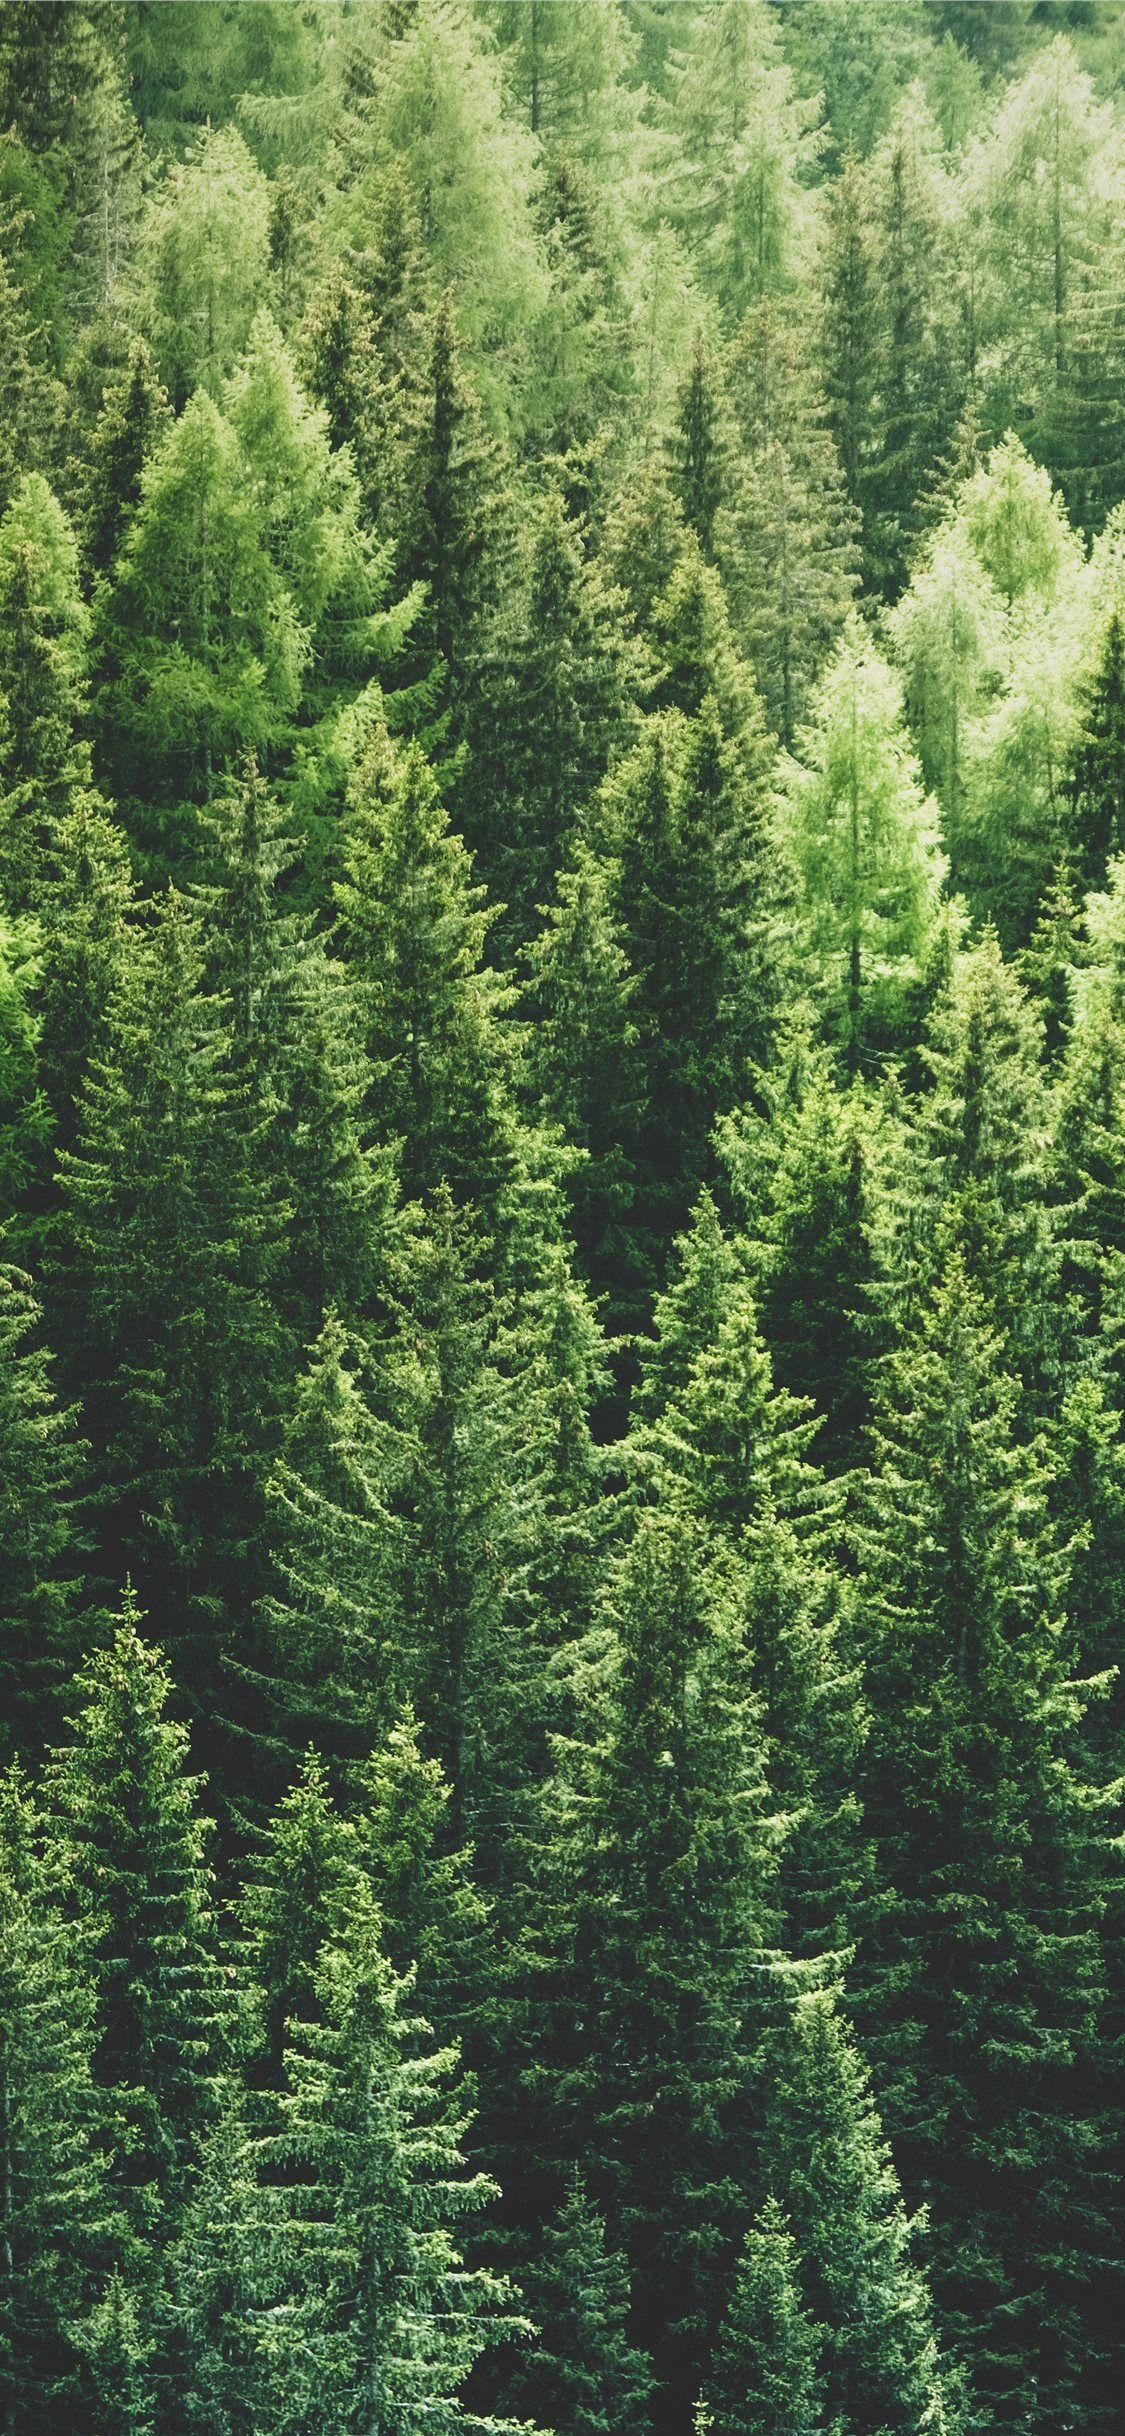 Green Pine Trees In Forrest Iphone 11 Wallpapers Tree Hd